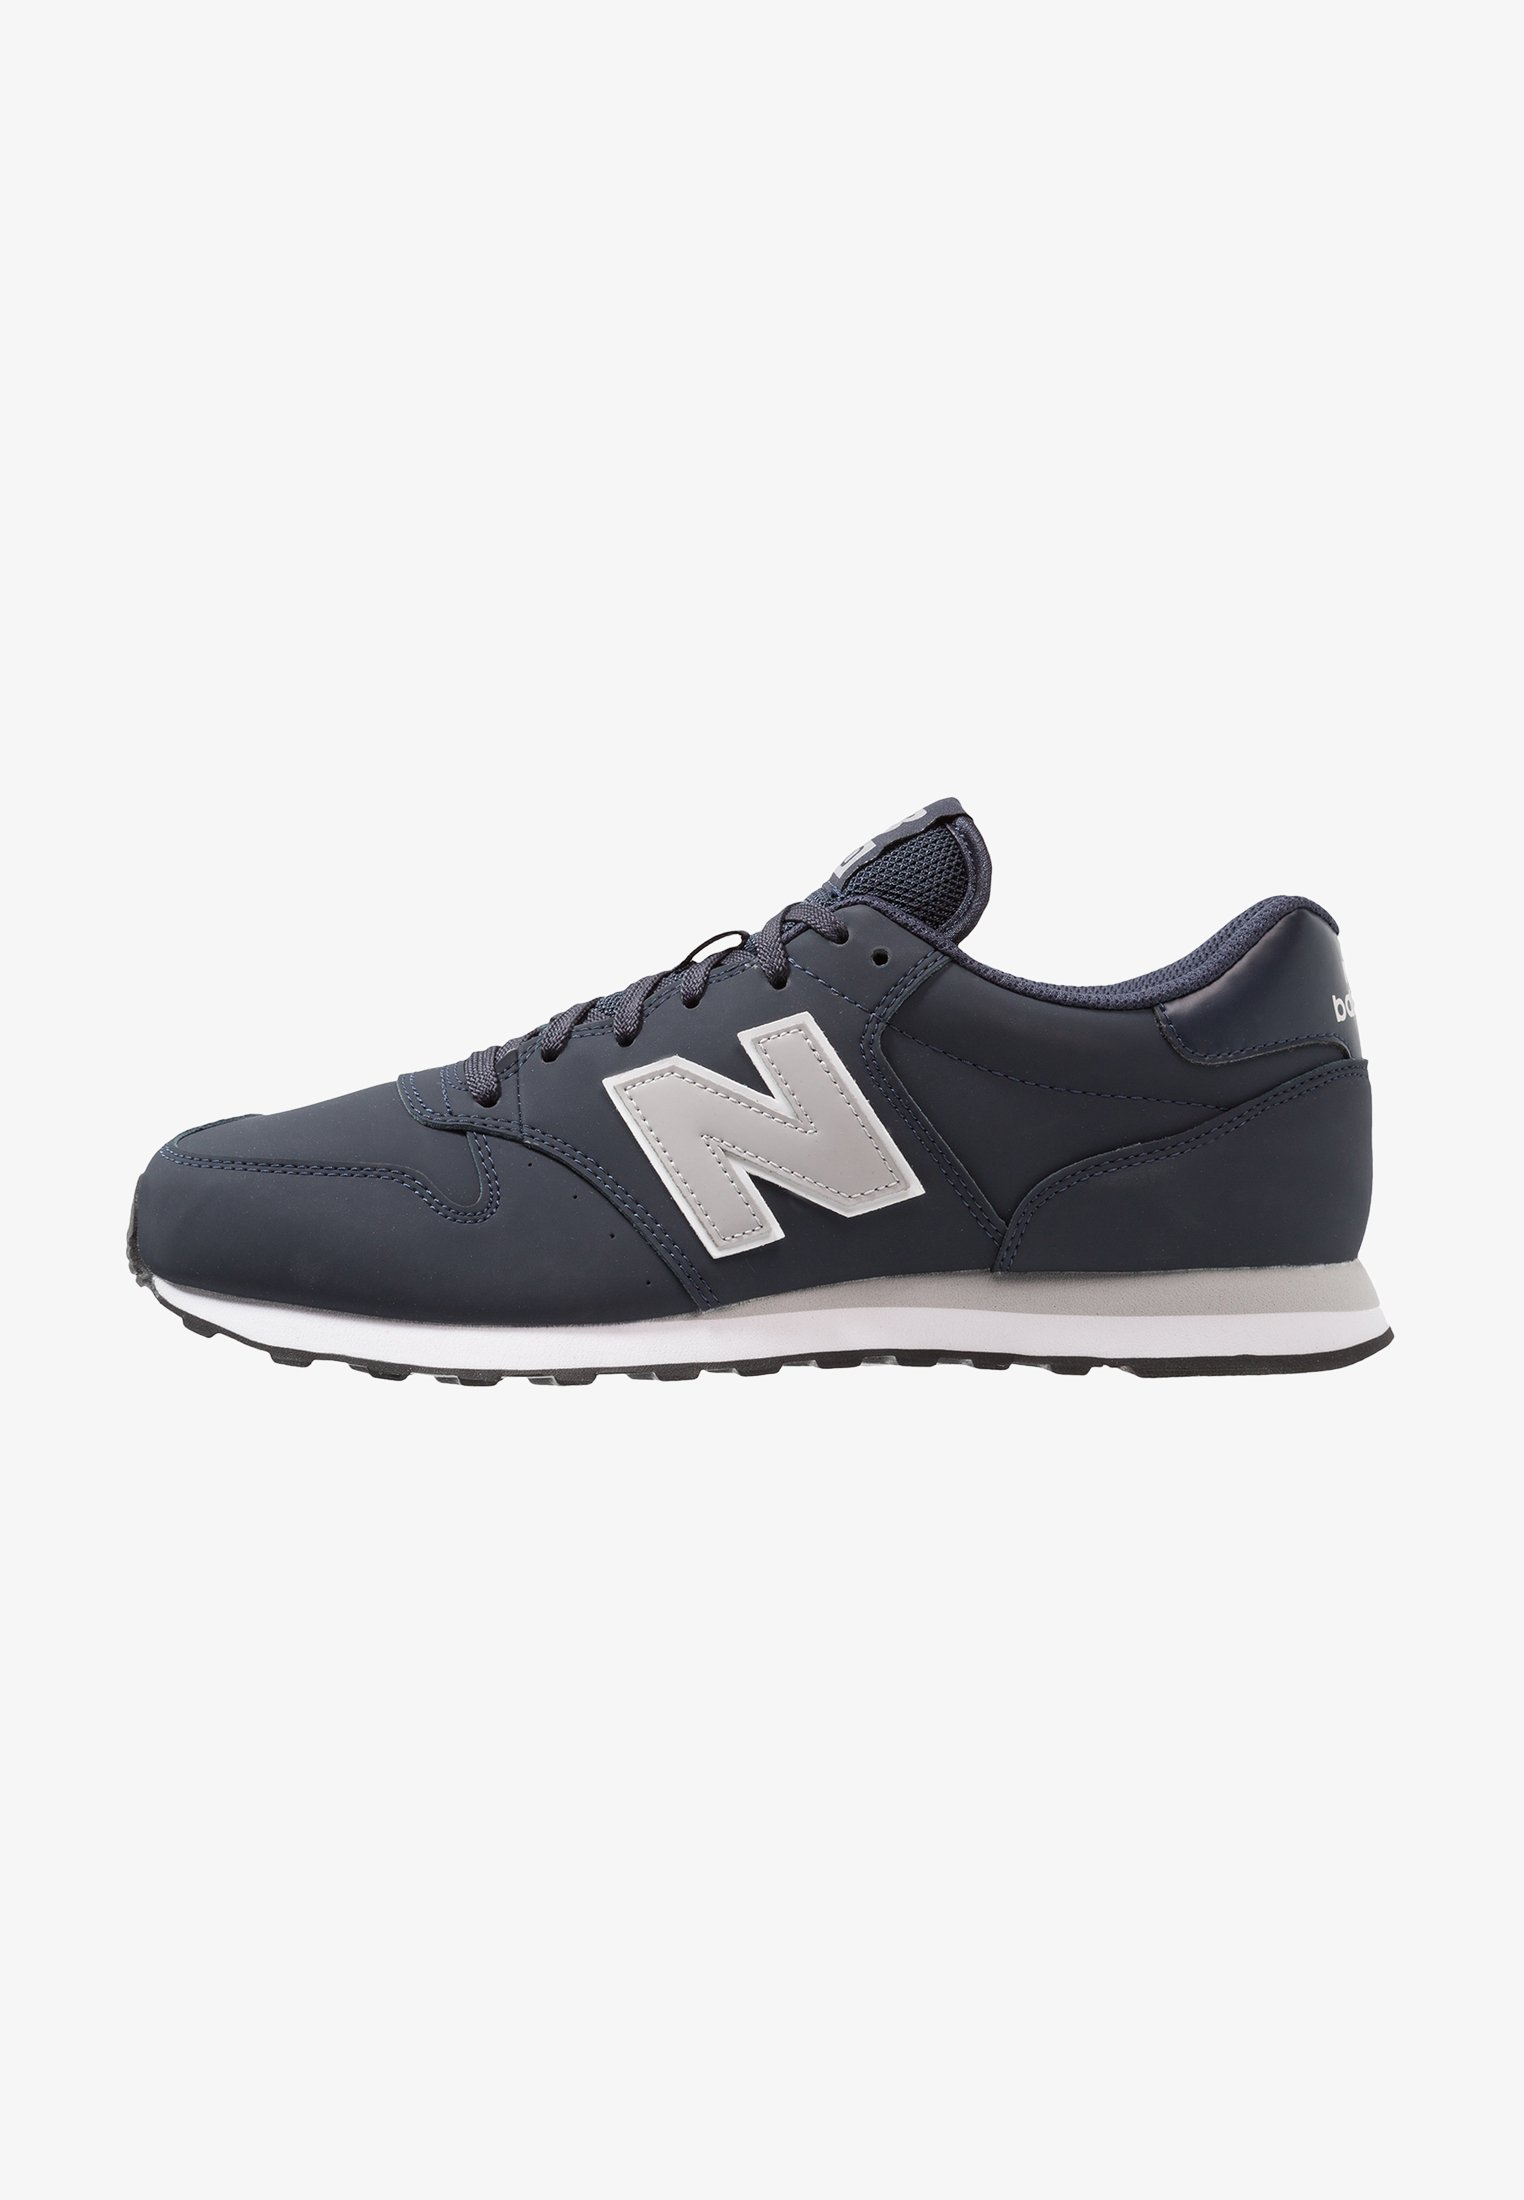 Fatídico Tradicion Apellido  New Balance GM500 - Trainers - navy/dark blue - Zalando.co.uk